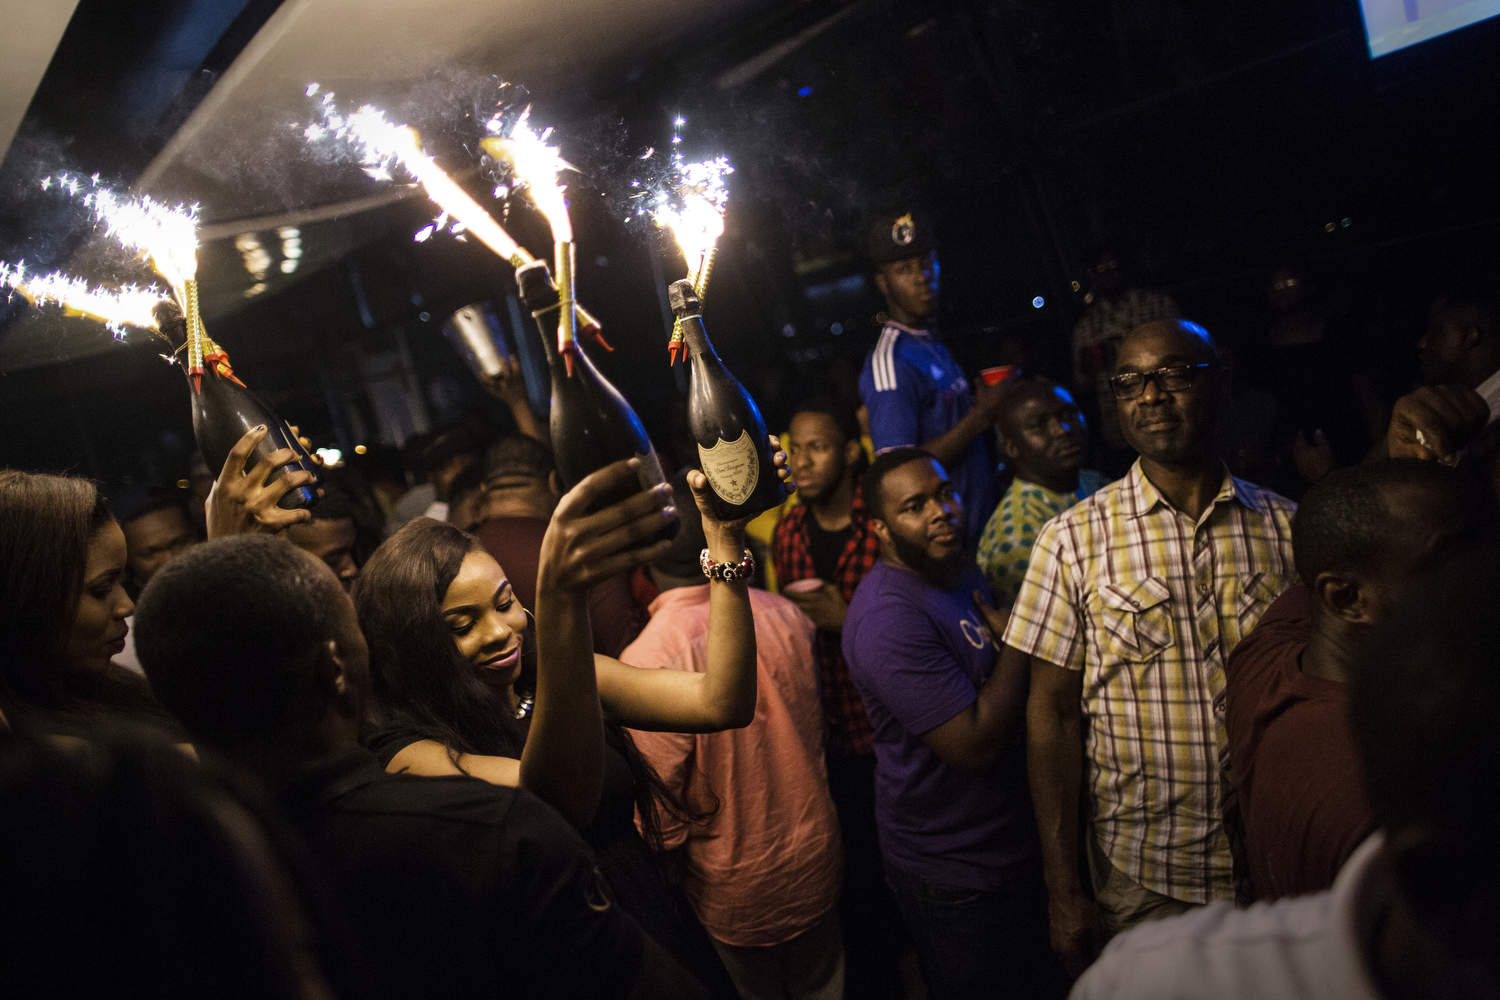 Bottle service is a common part of club culture and when people order bottles, girls bring them out with sparklers.